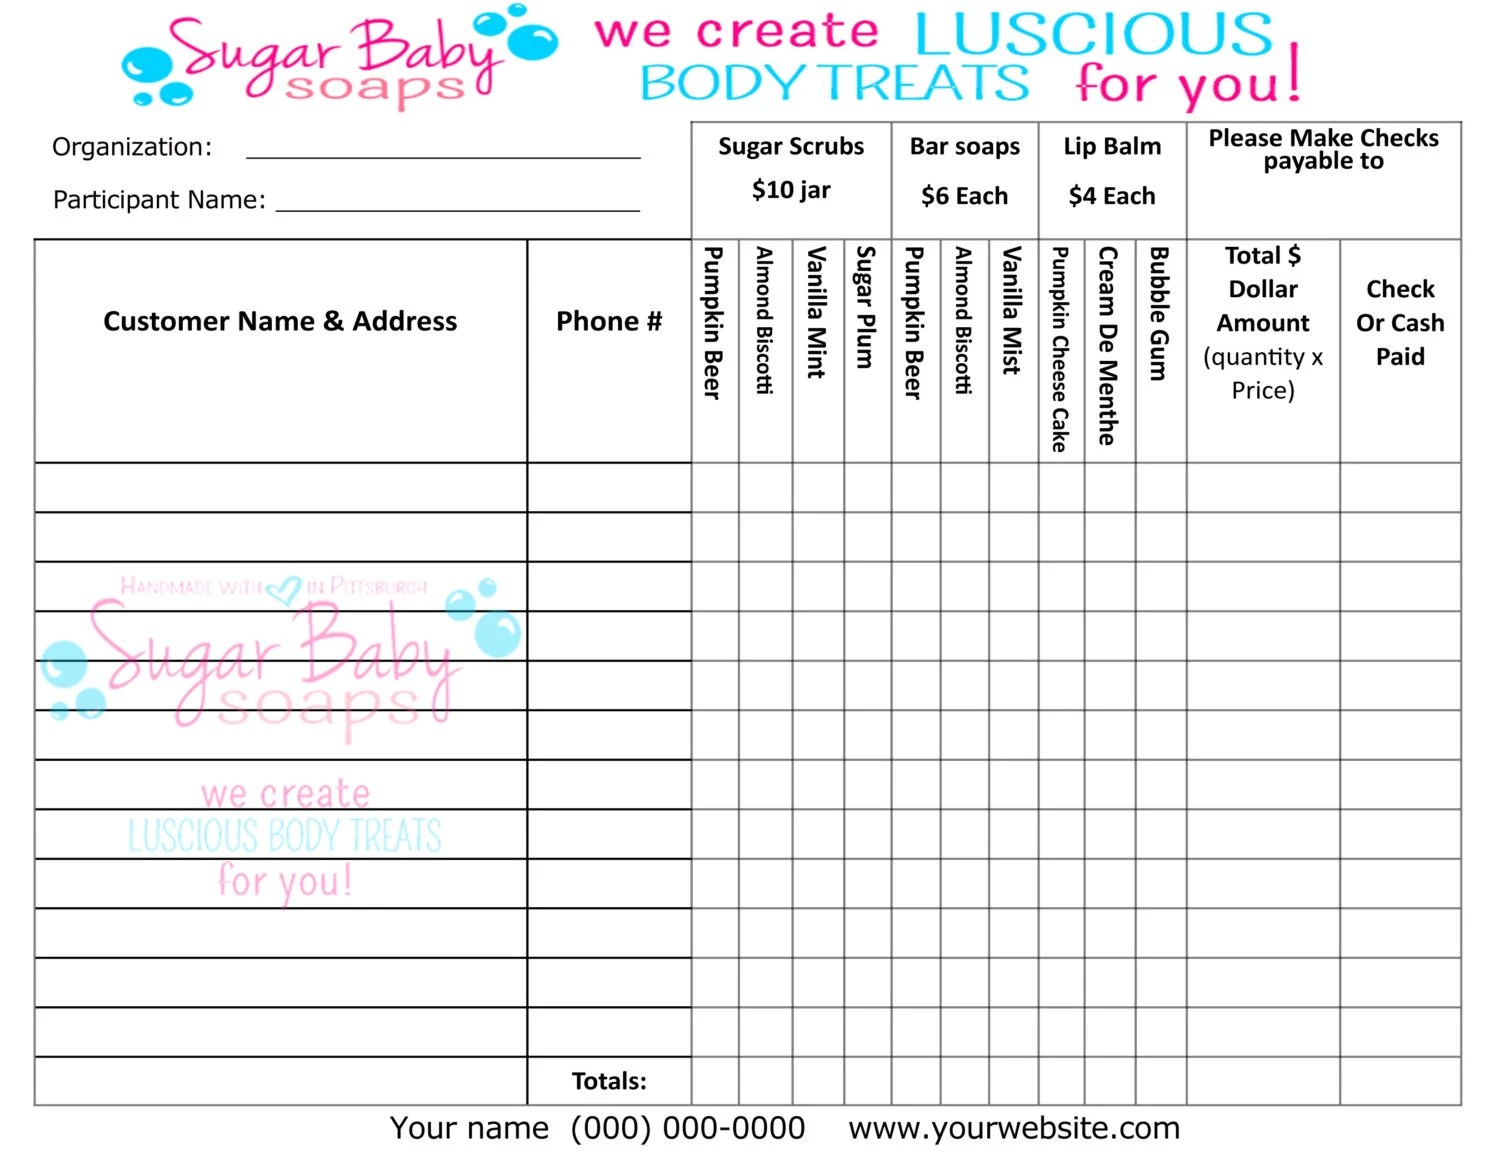 Template Order Fundraiser Form Scentsy